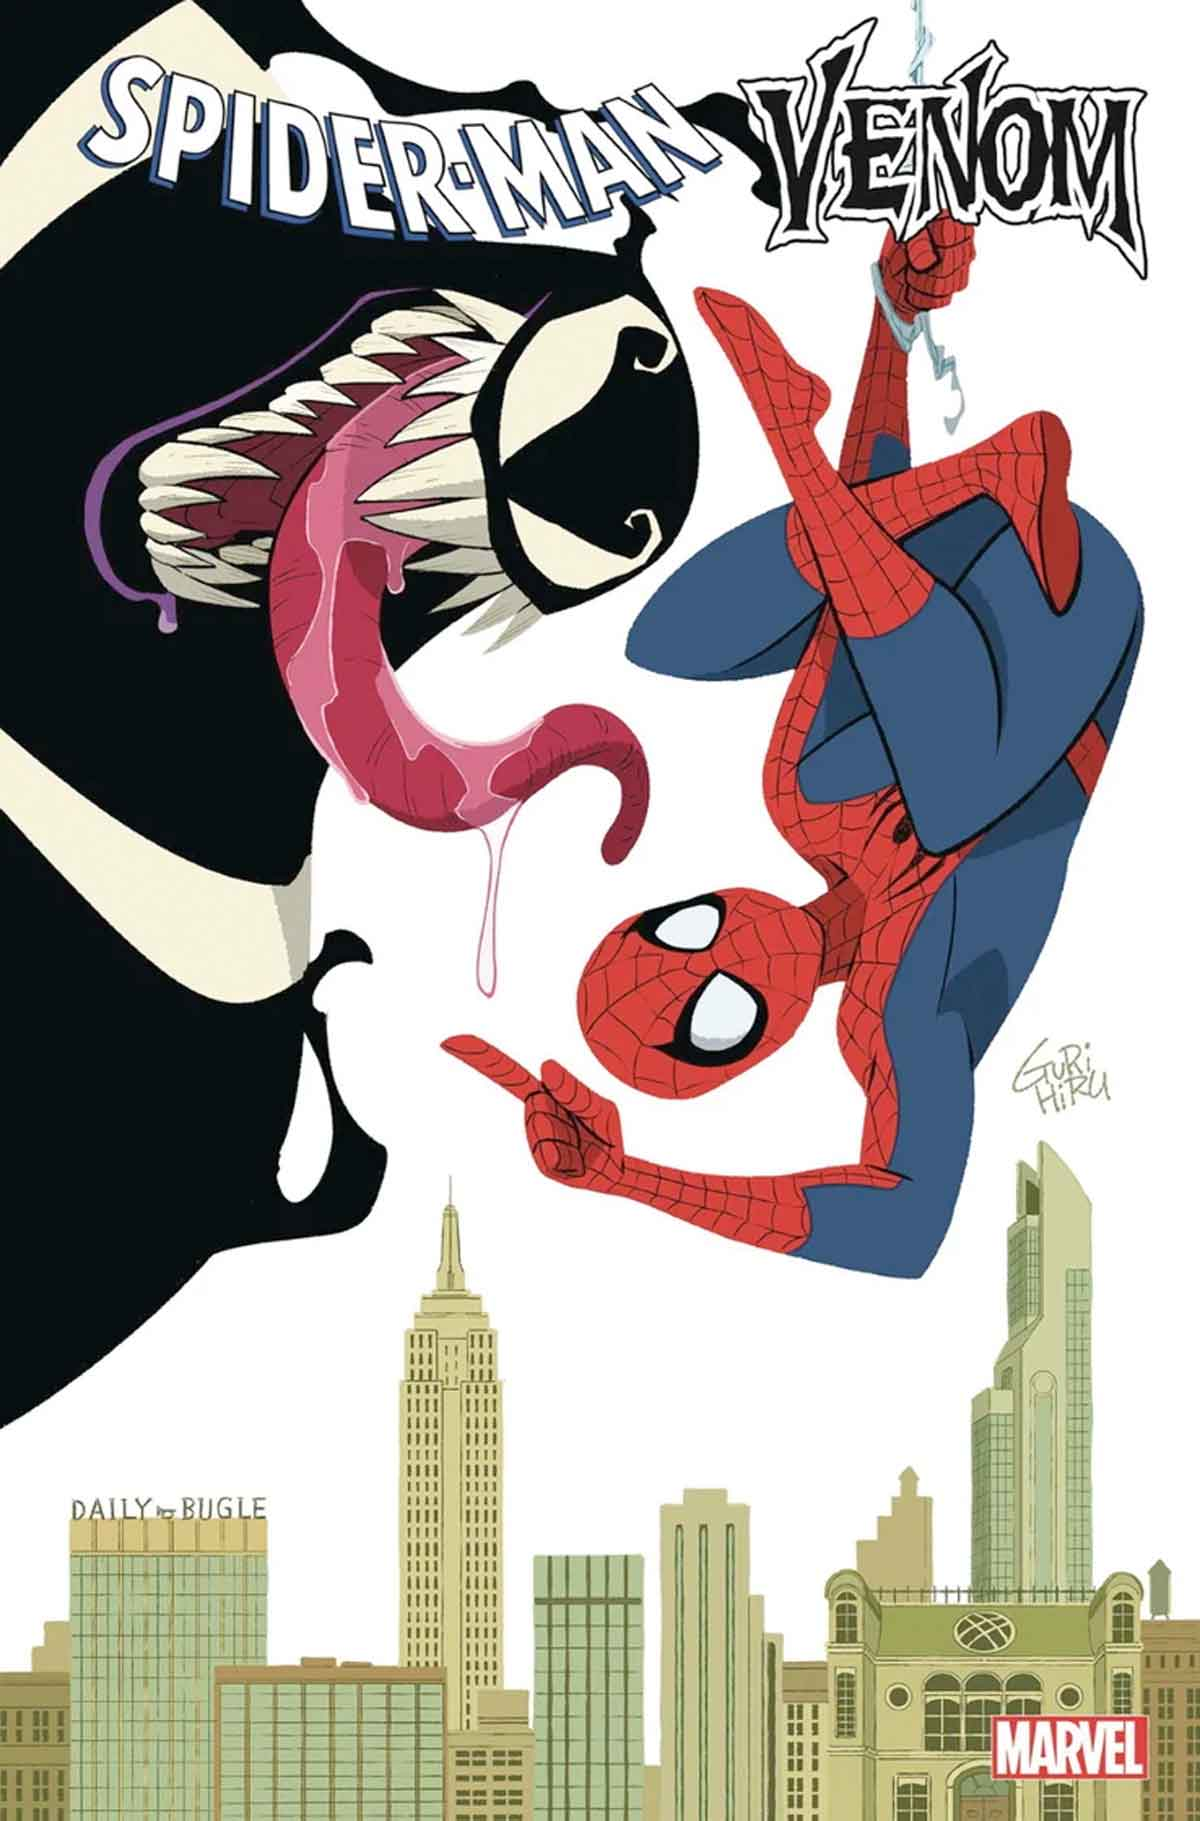 Spider-Man y Venom intercambian cuerpos en Marvel